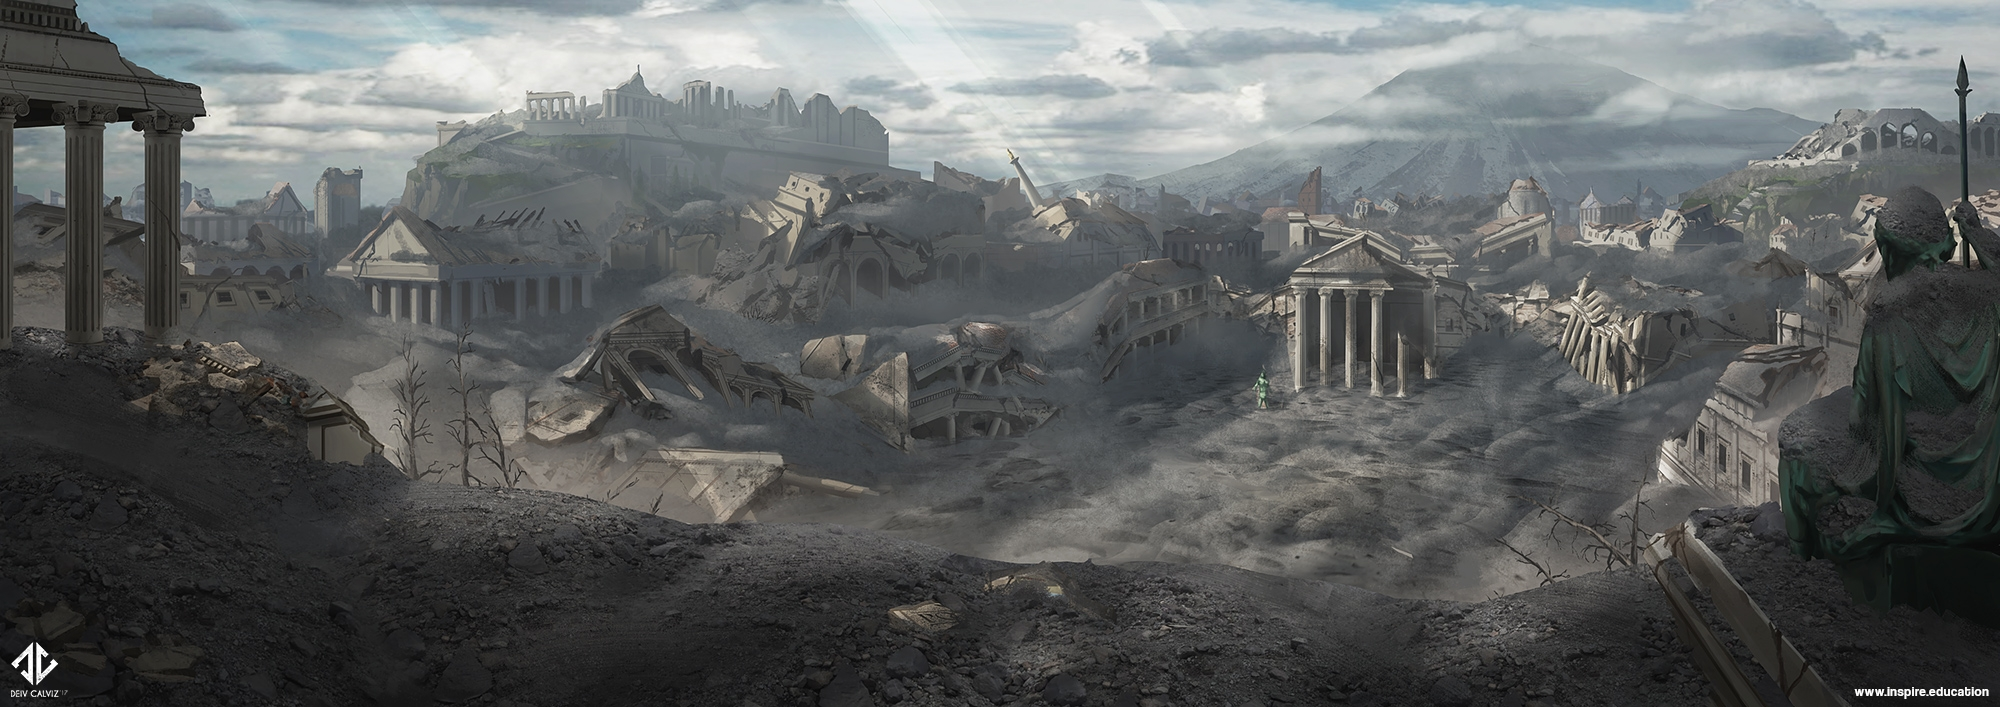 Pompeii_Destroyed_05_Deiv_Calviz